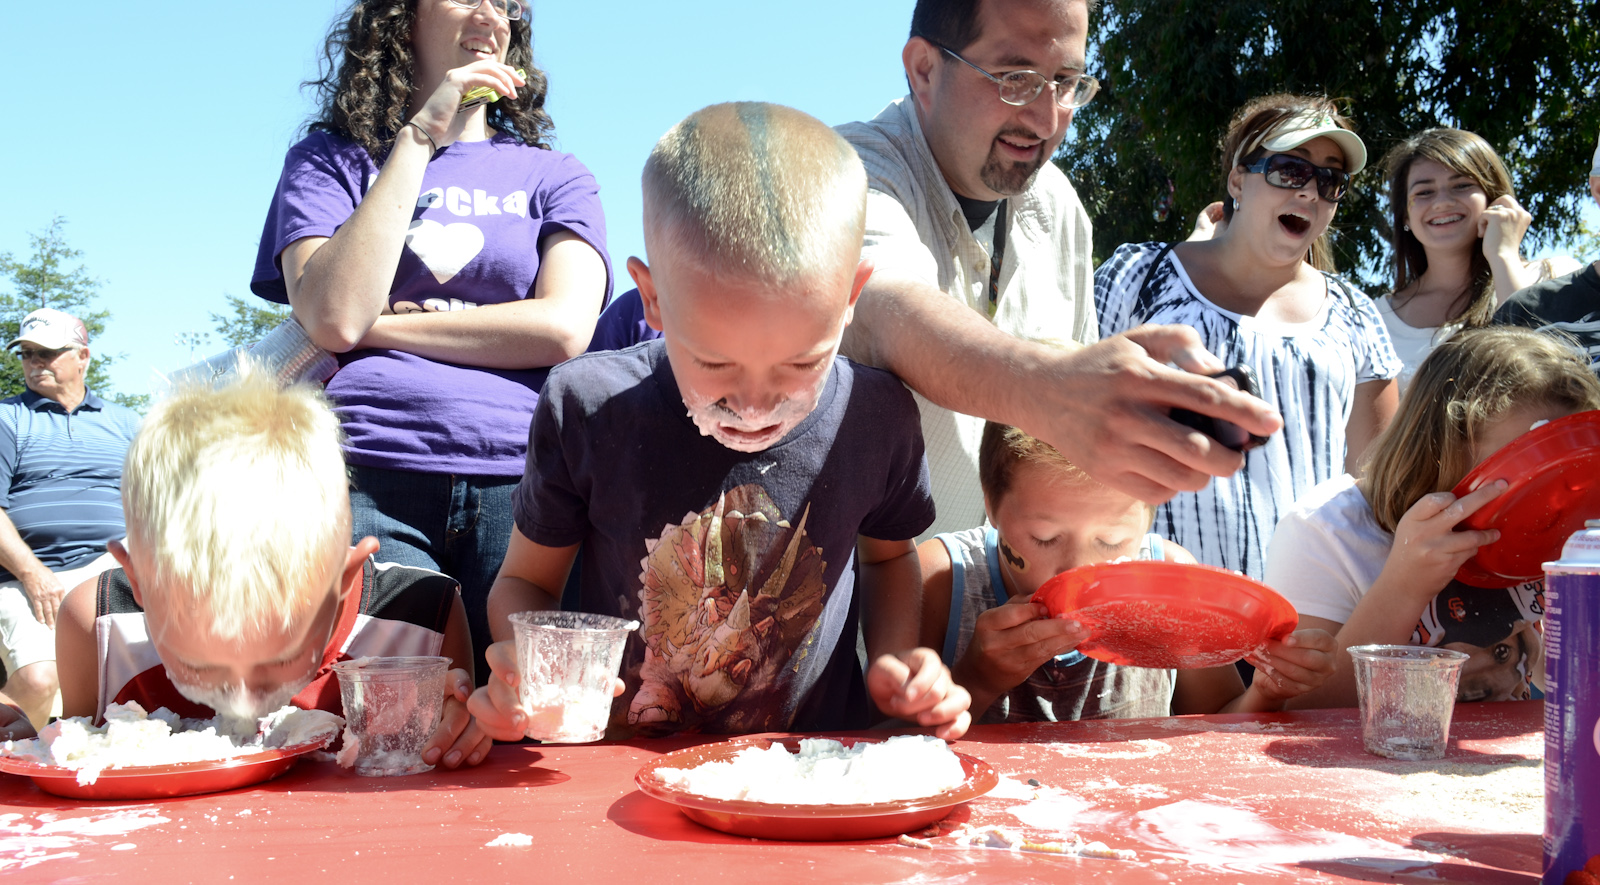 Worm Eating Contest - The Boy Standing up, Just Ate His FIRST Worm